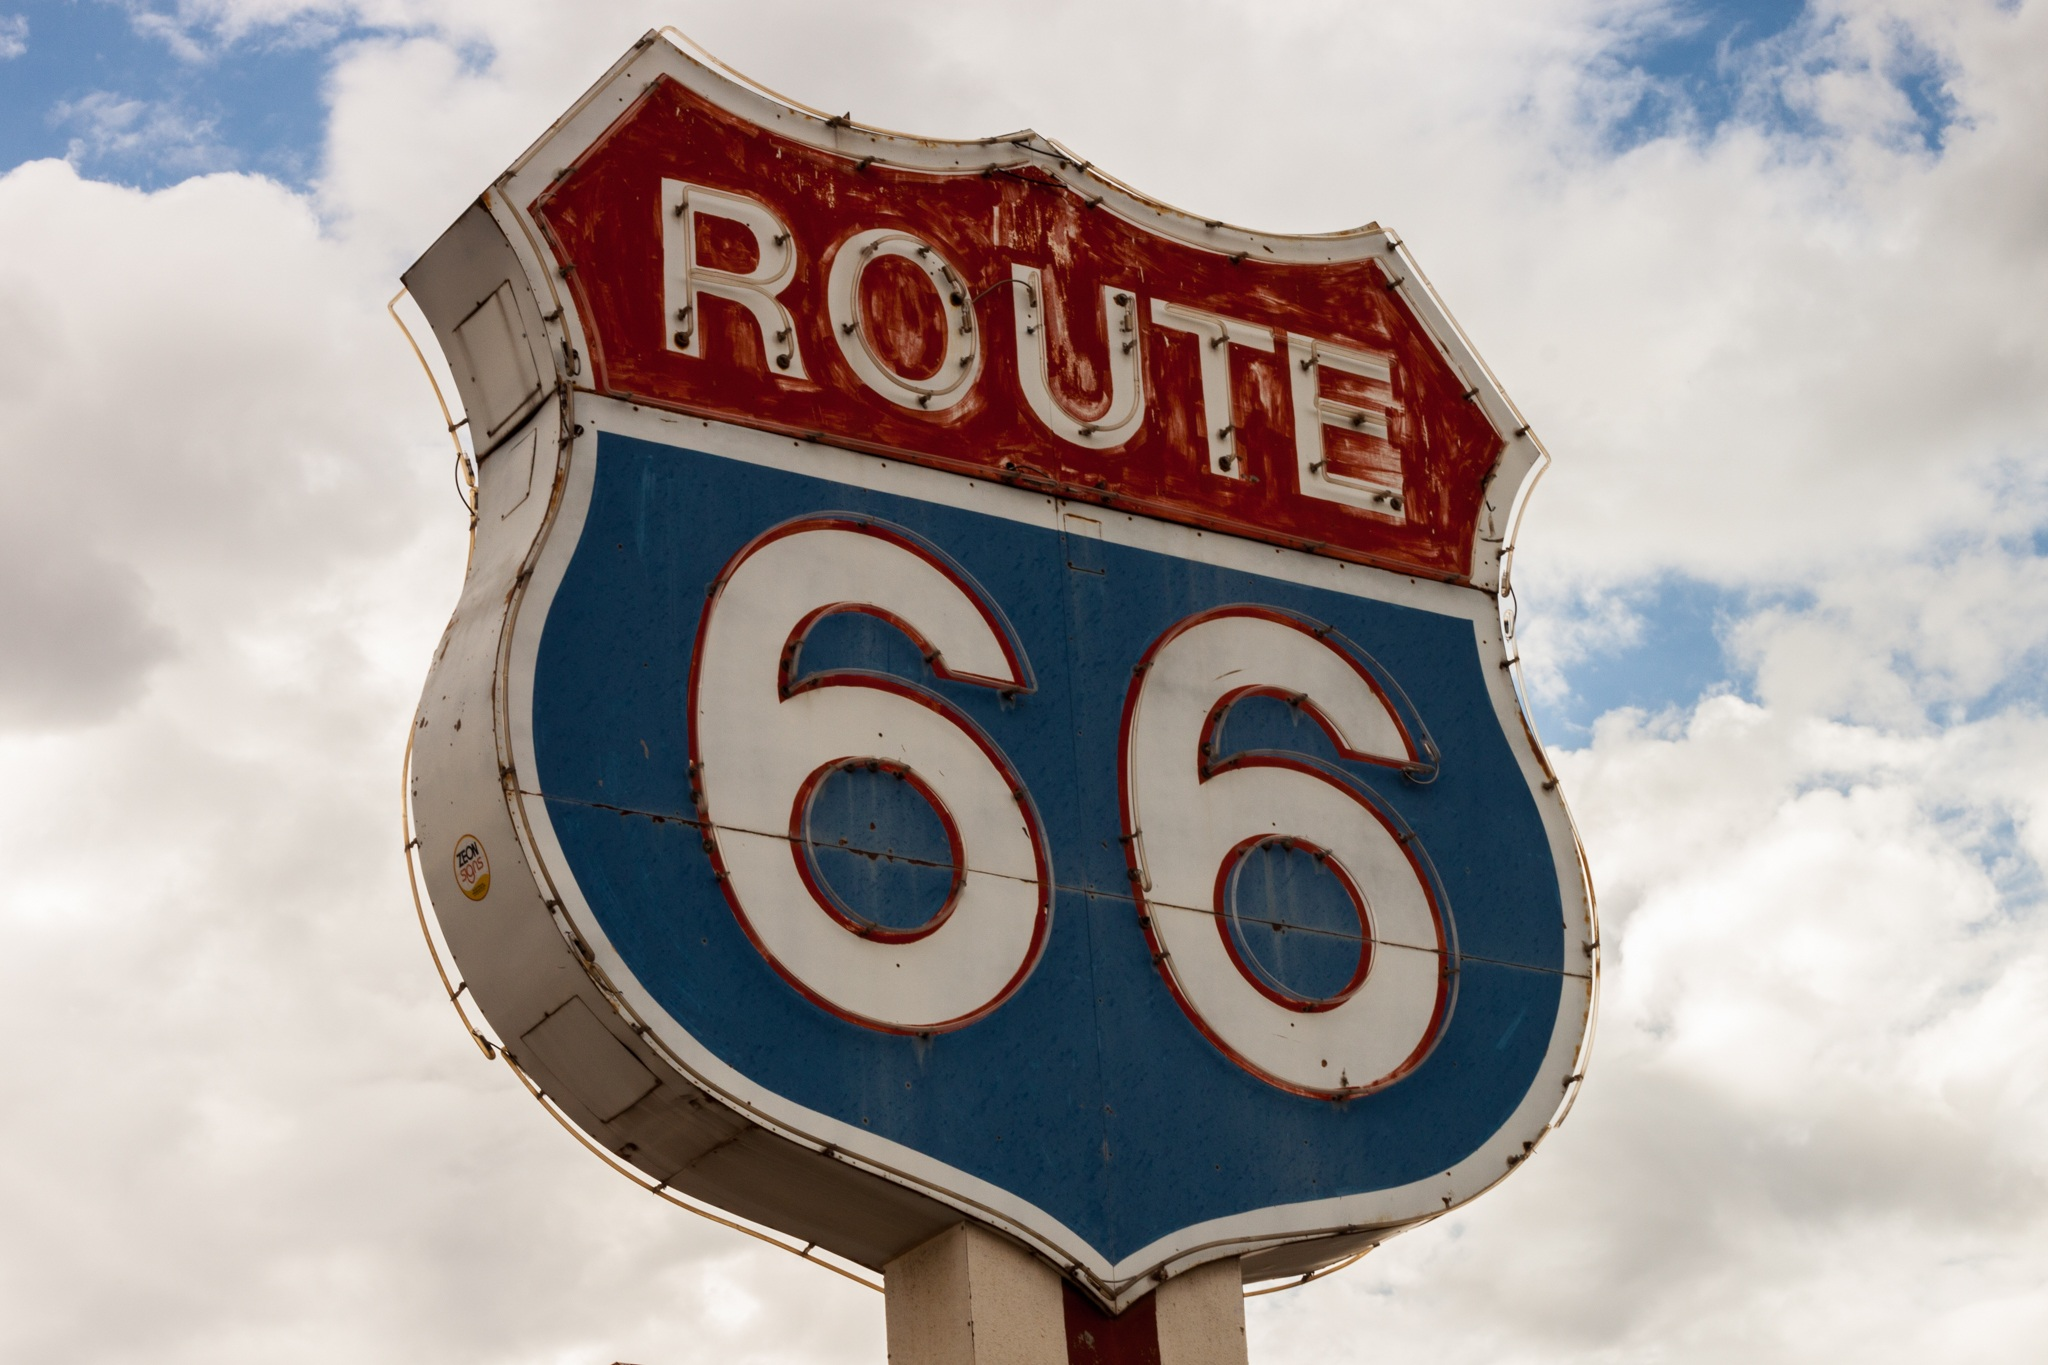 route 66, sign, highway